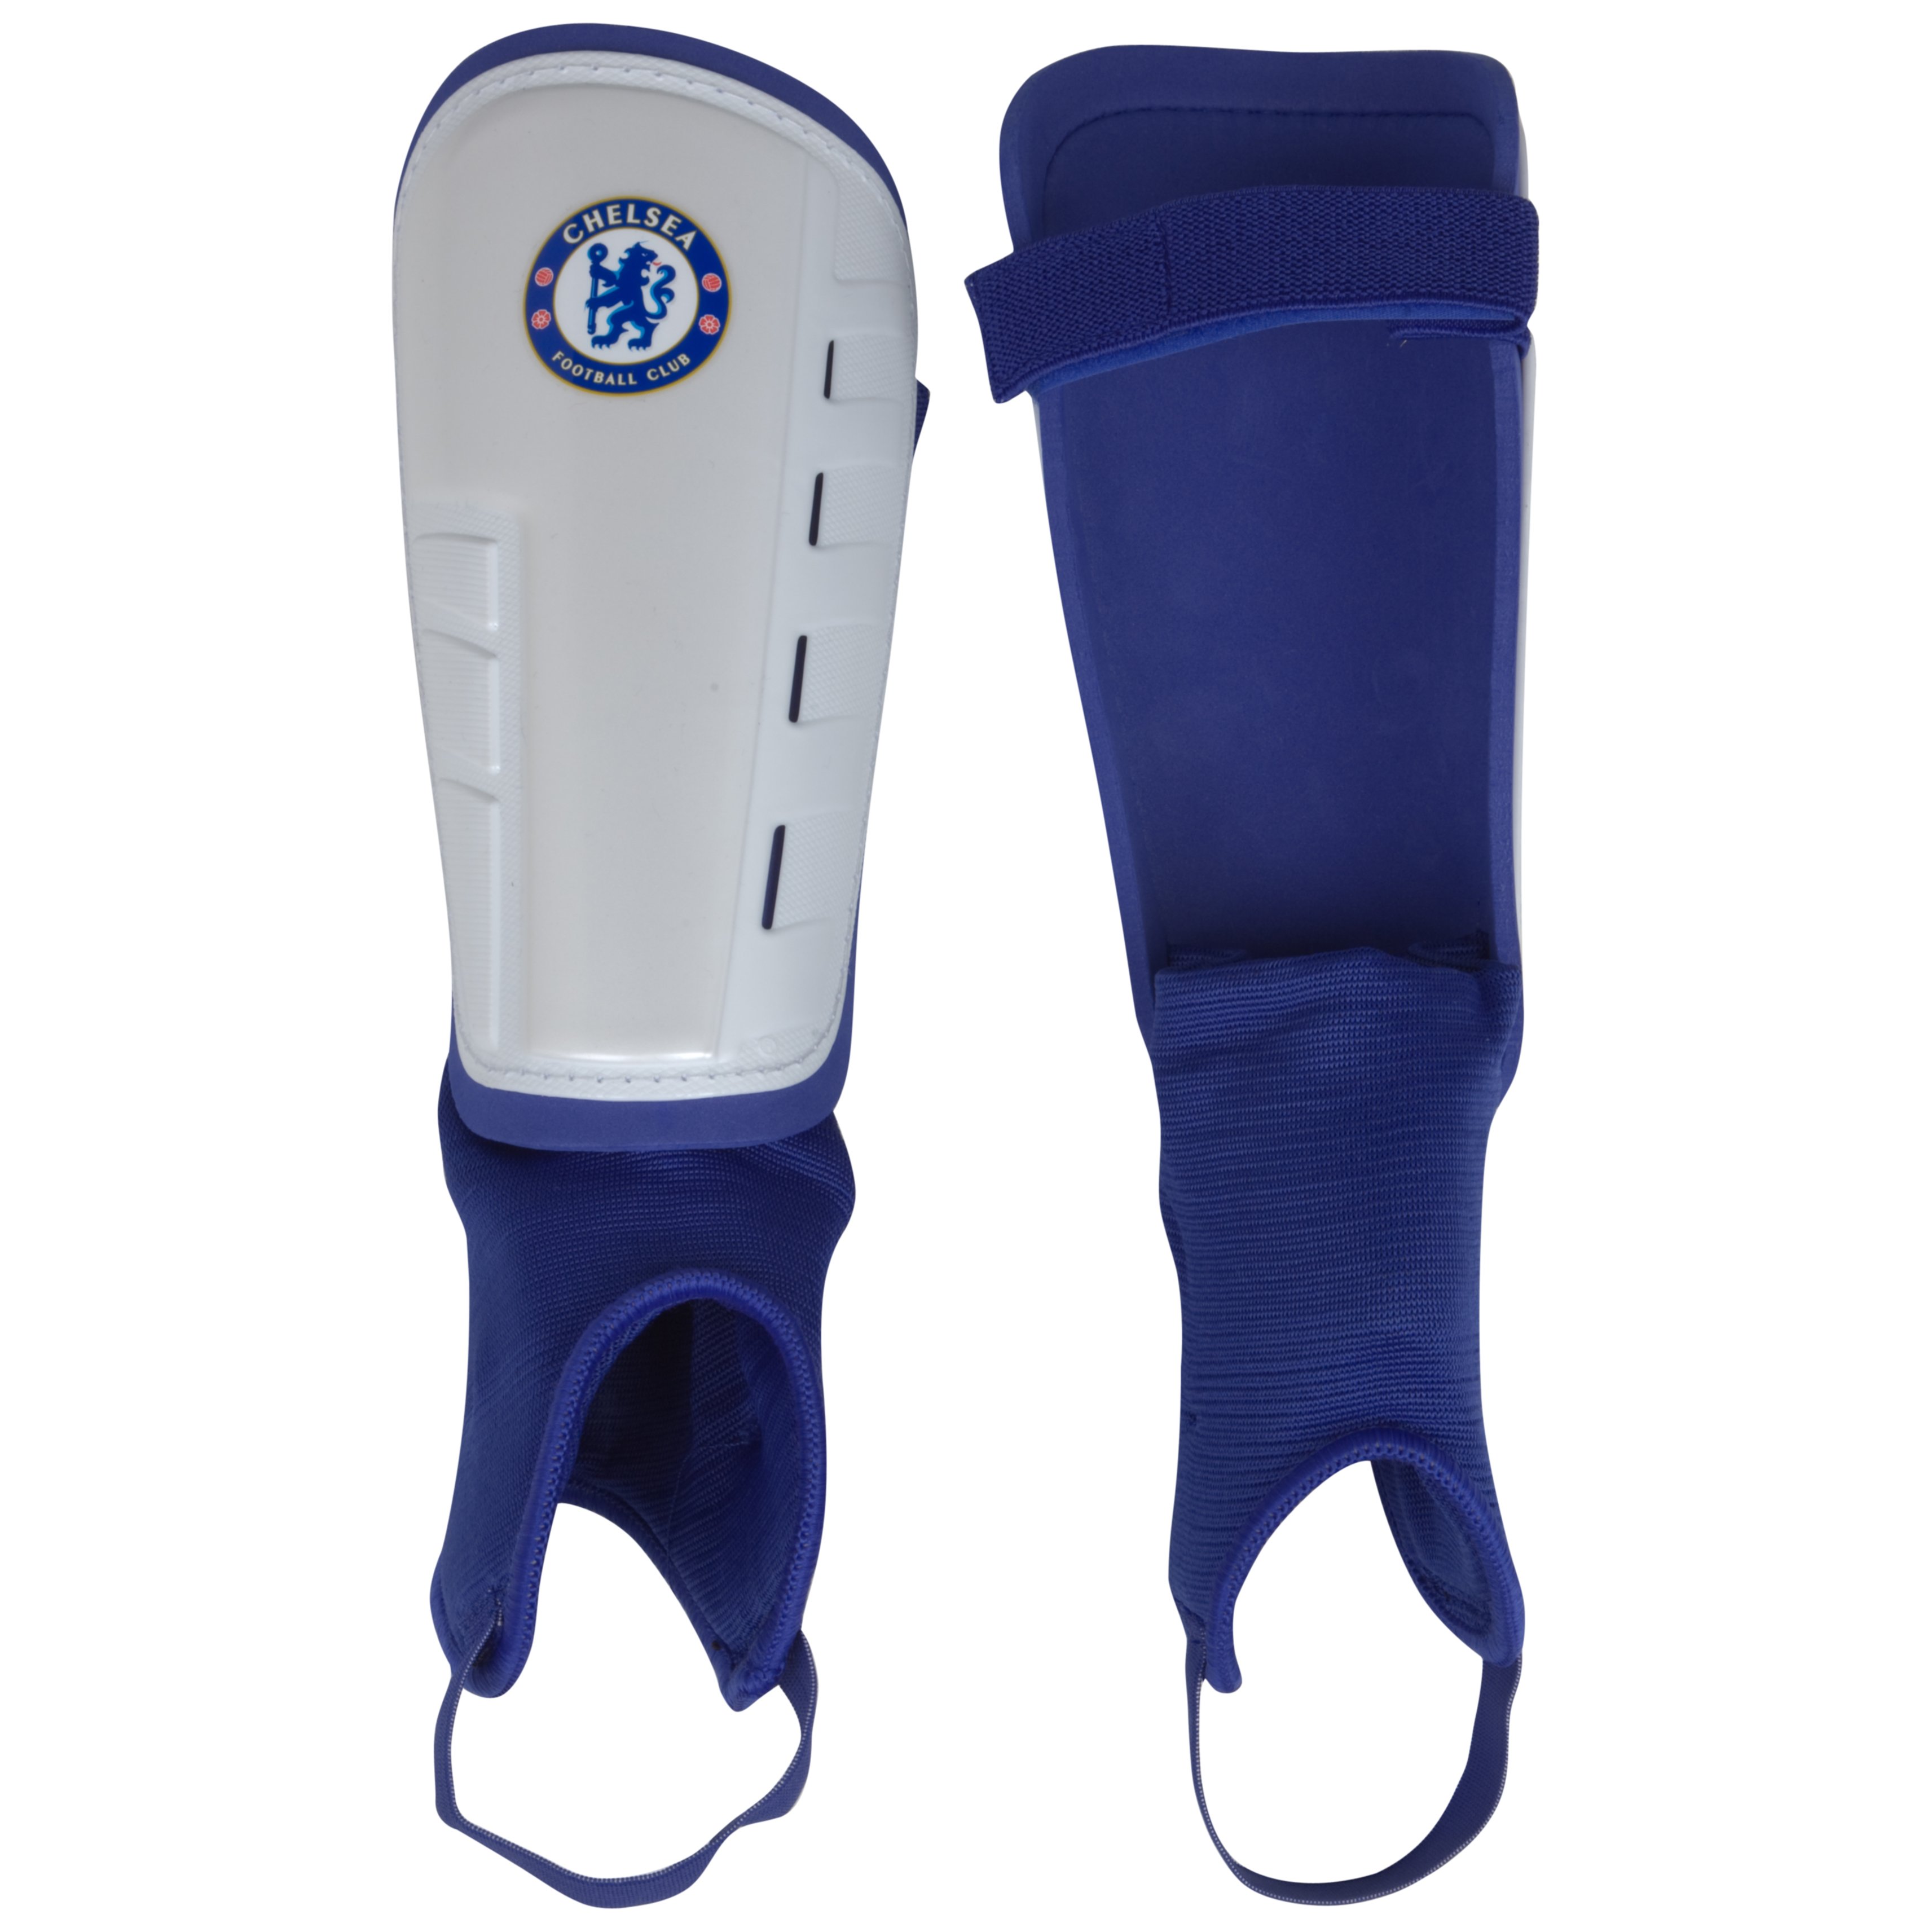 Chelsea Ankle Shin Guards - Youth